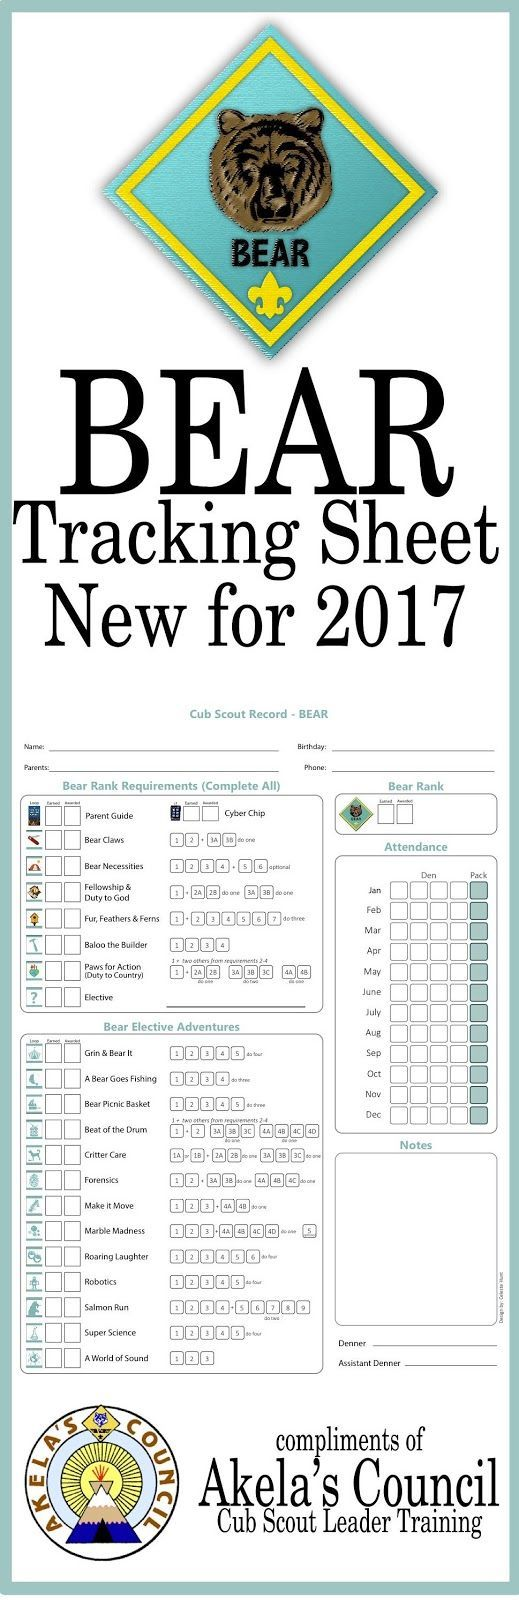 This new * Bear Tracking Sheet will help you be able to keep track of where each boy is at towards the Wolf, Adventures, and Cyber Chip requirements.